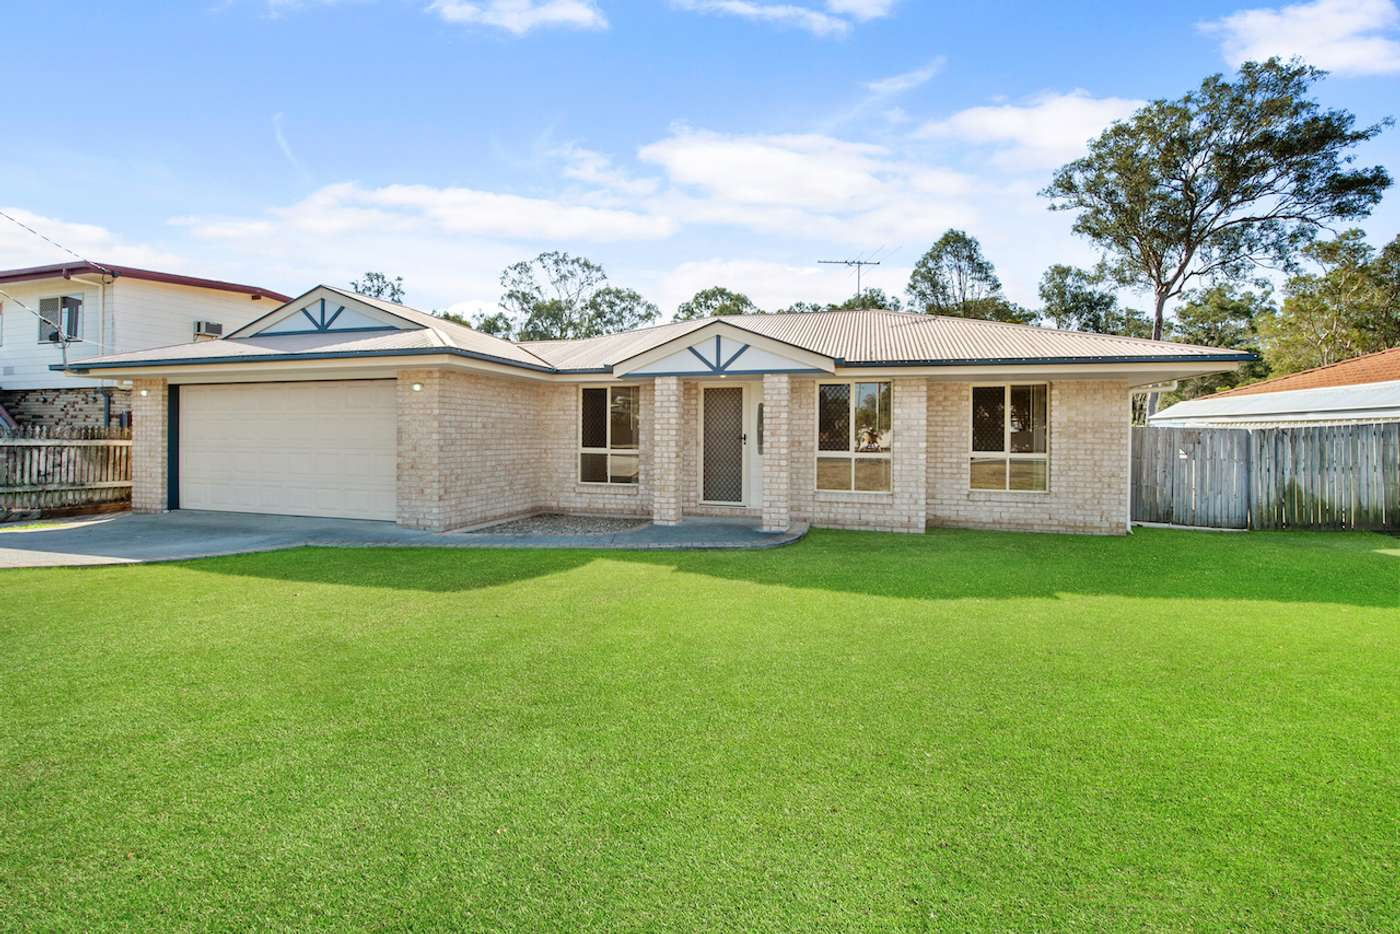 Main view of Homely house listing, 66 Bronzewing Crescent, Deception Bay QLD 4508